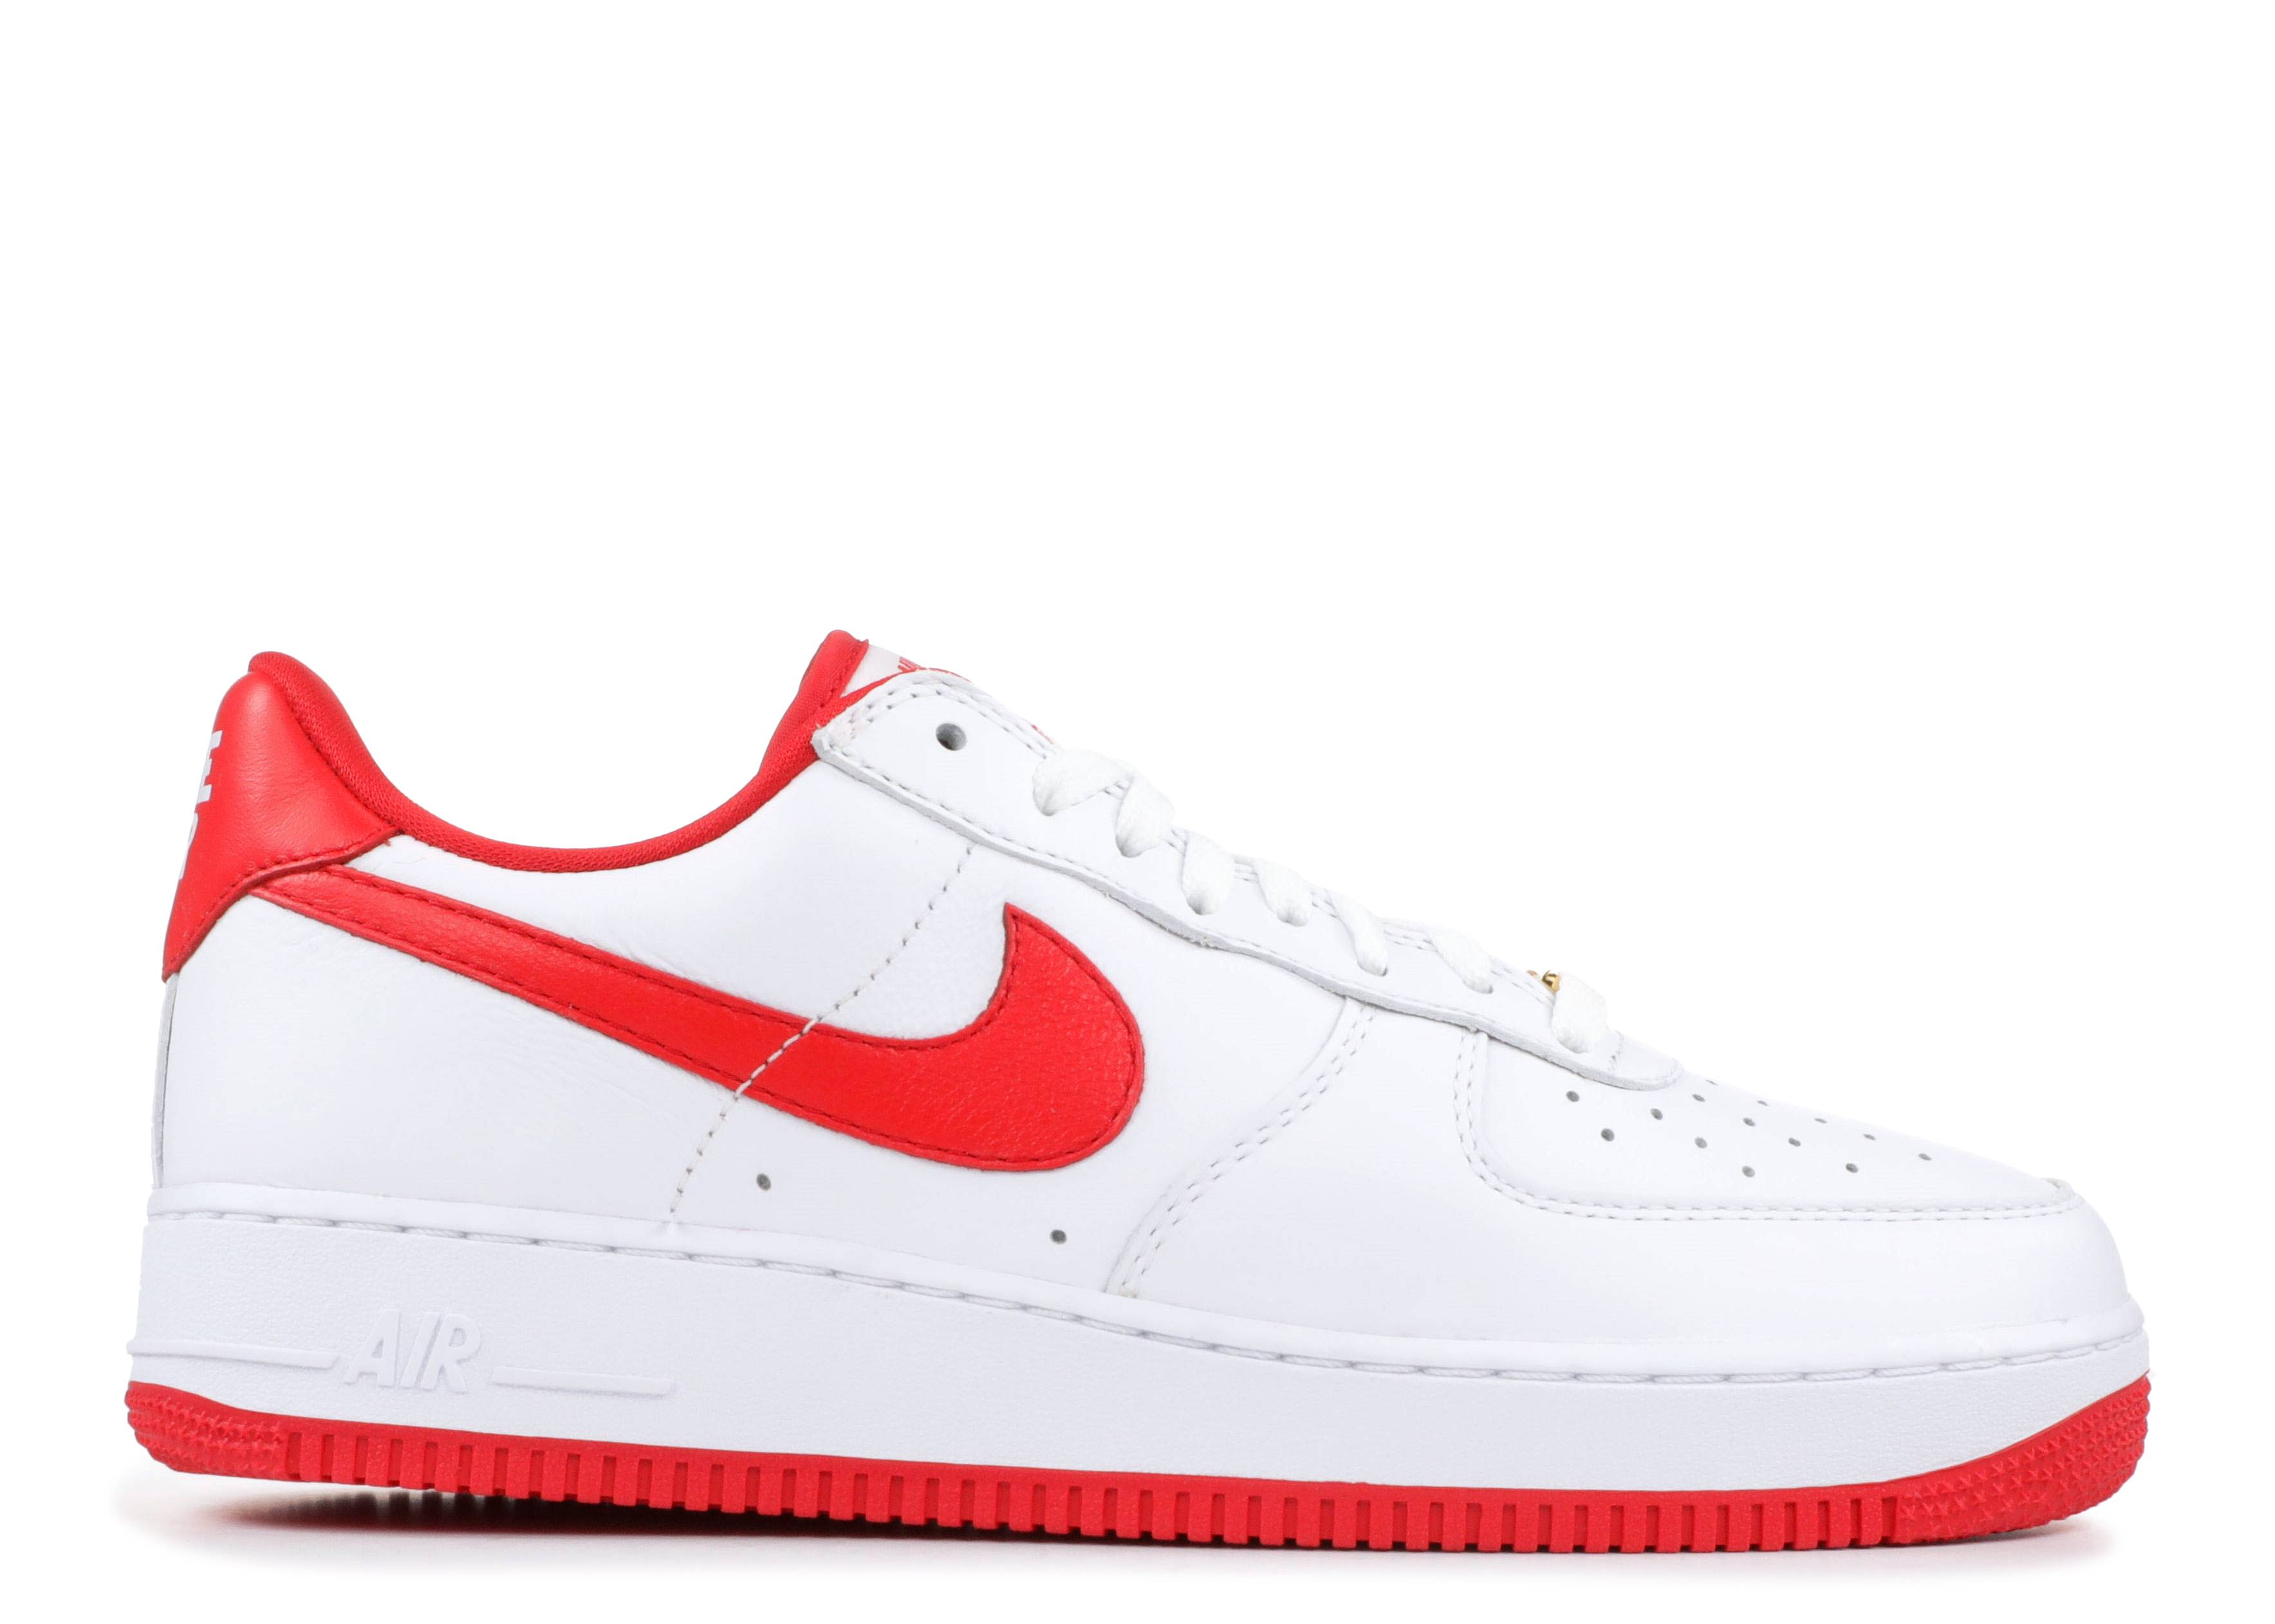 AIR FORCE 1 LOW RETRO CT 16 QS